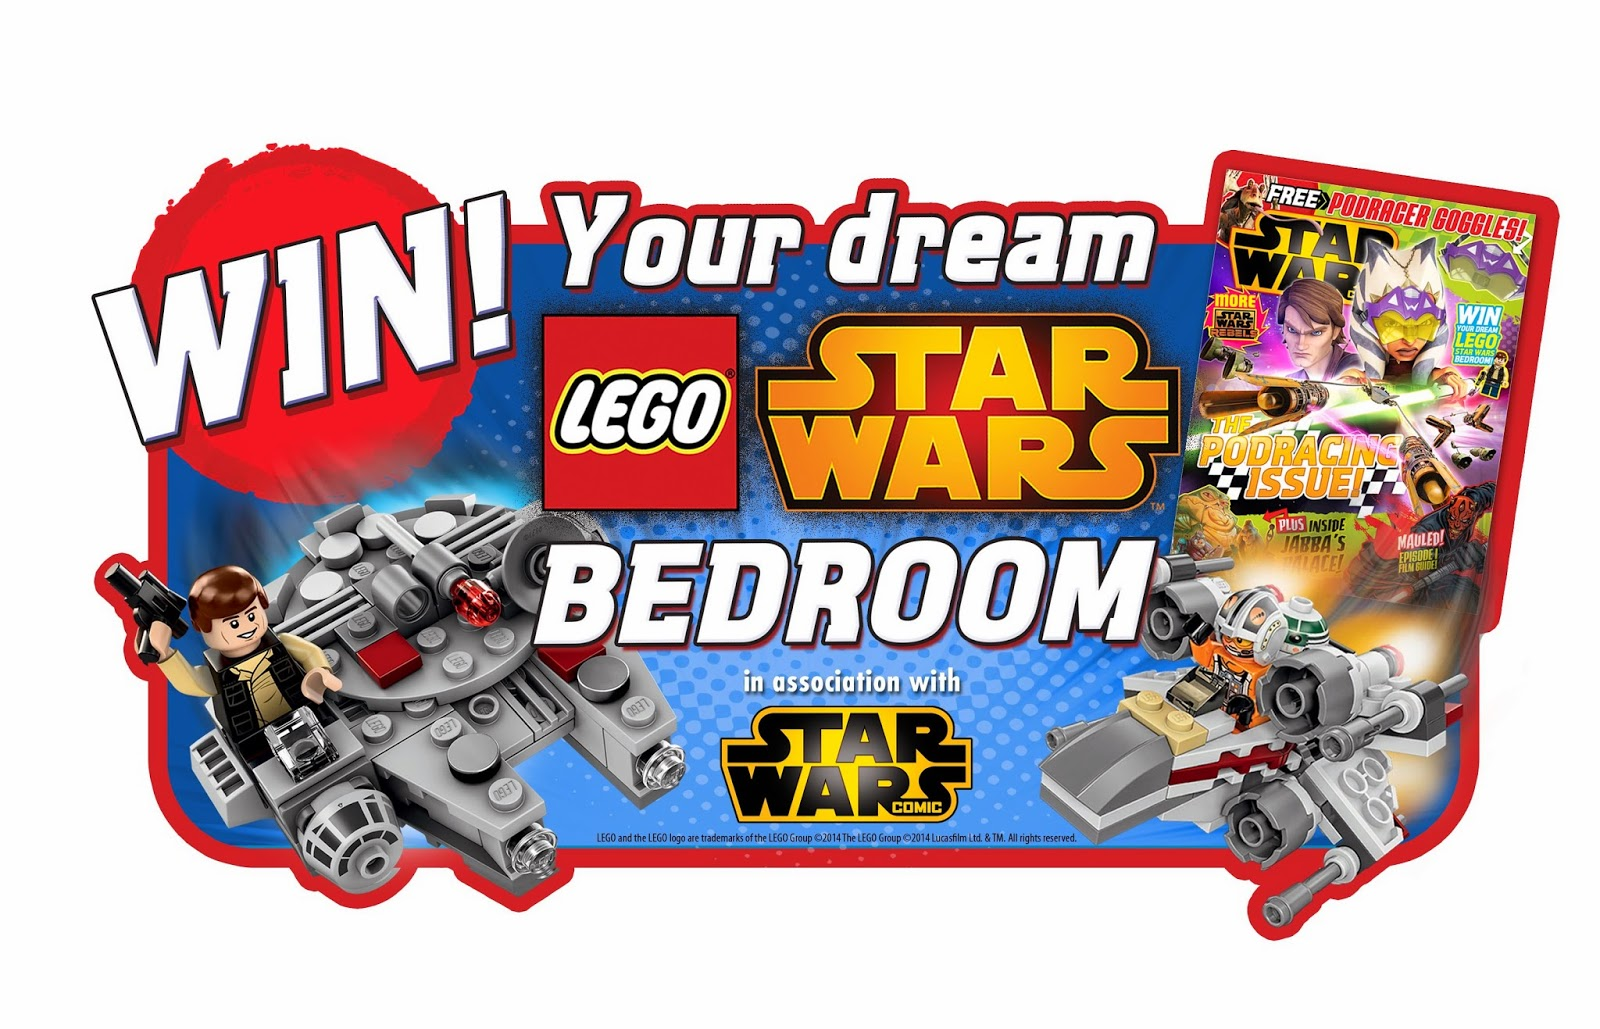 LEGO Star Wars Design Your Dream Bedroom Competition, LEGO Star Wars Bedroom, LEGO competition